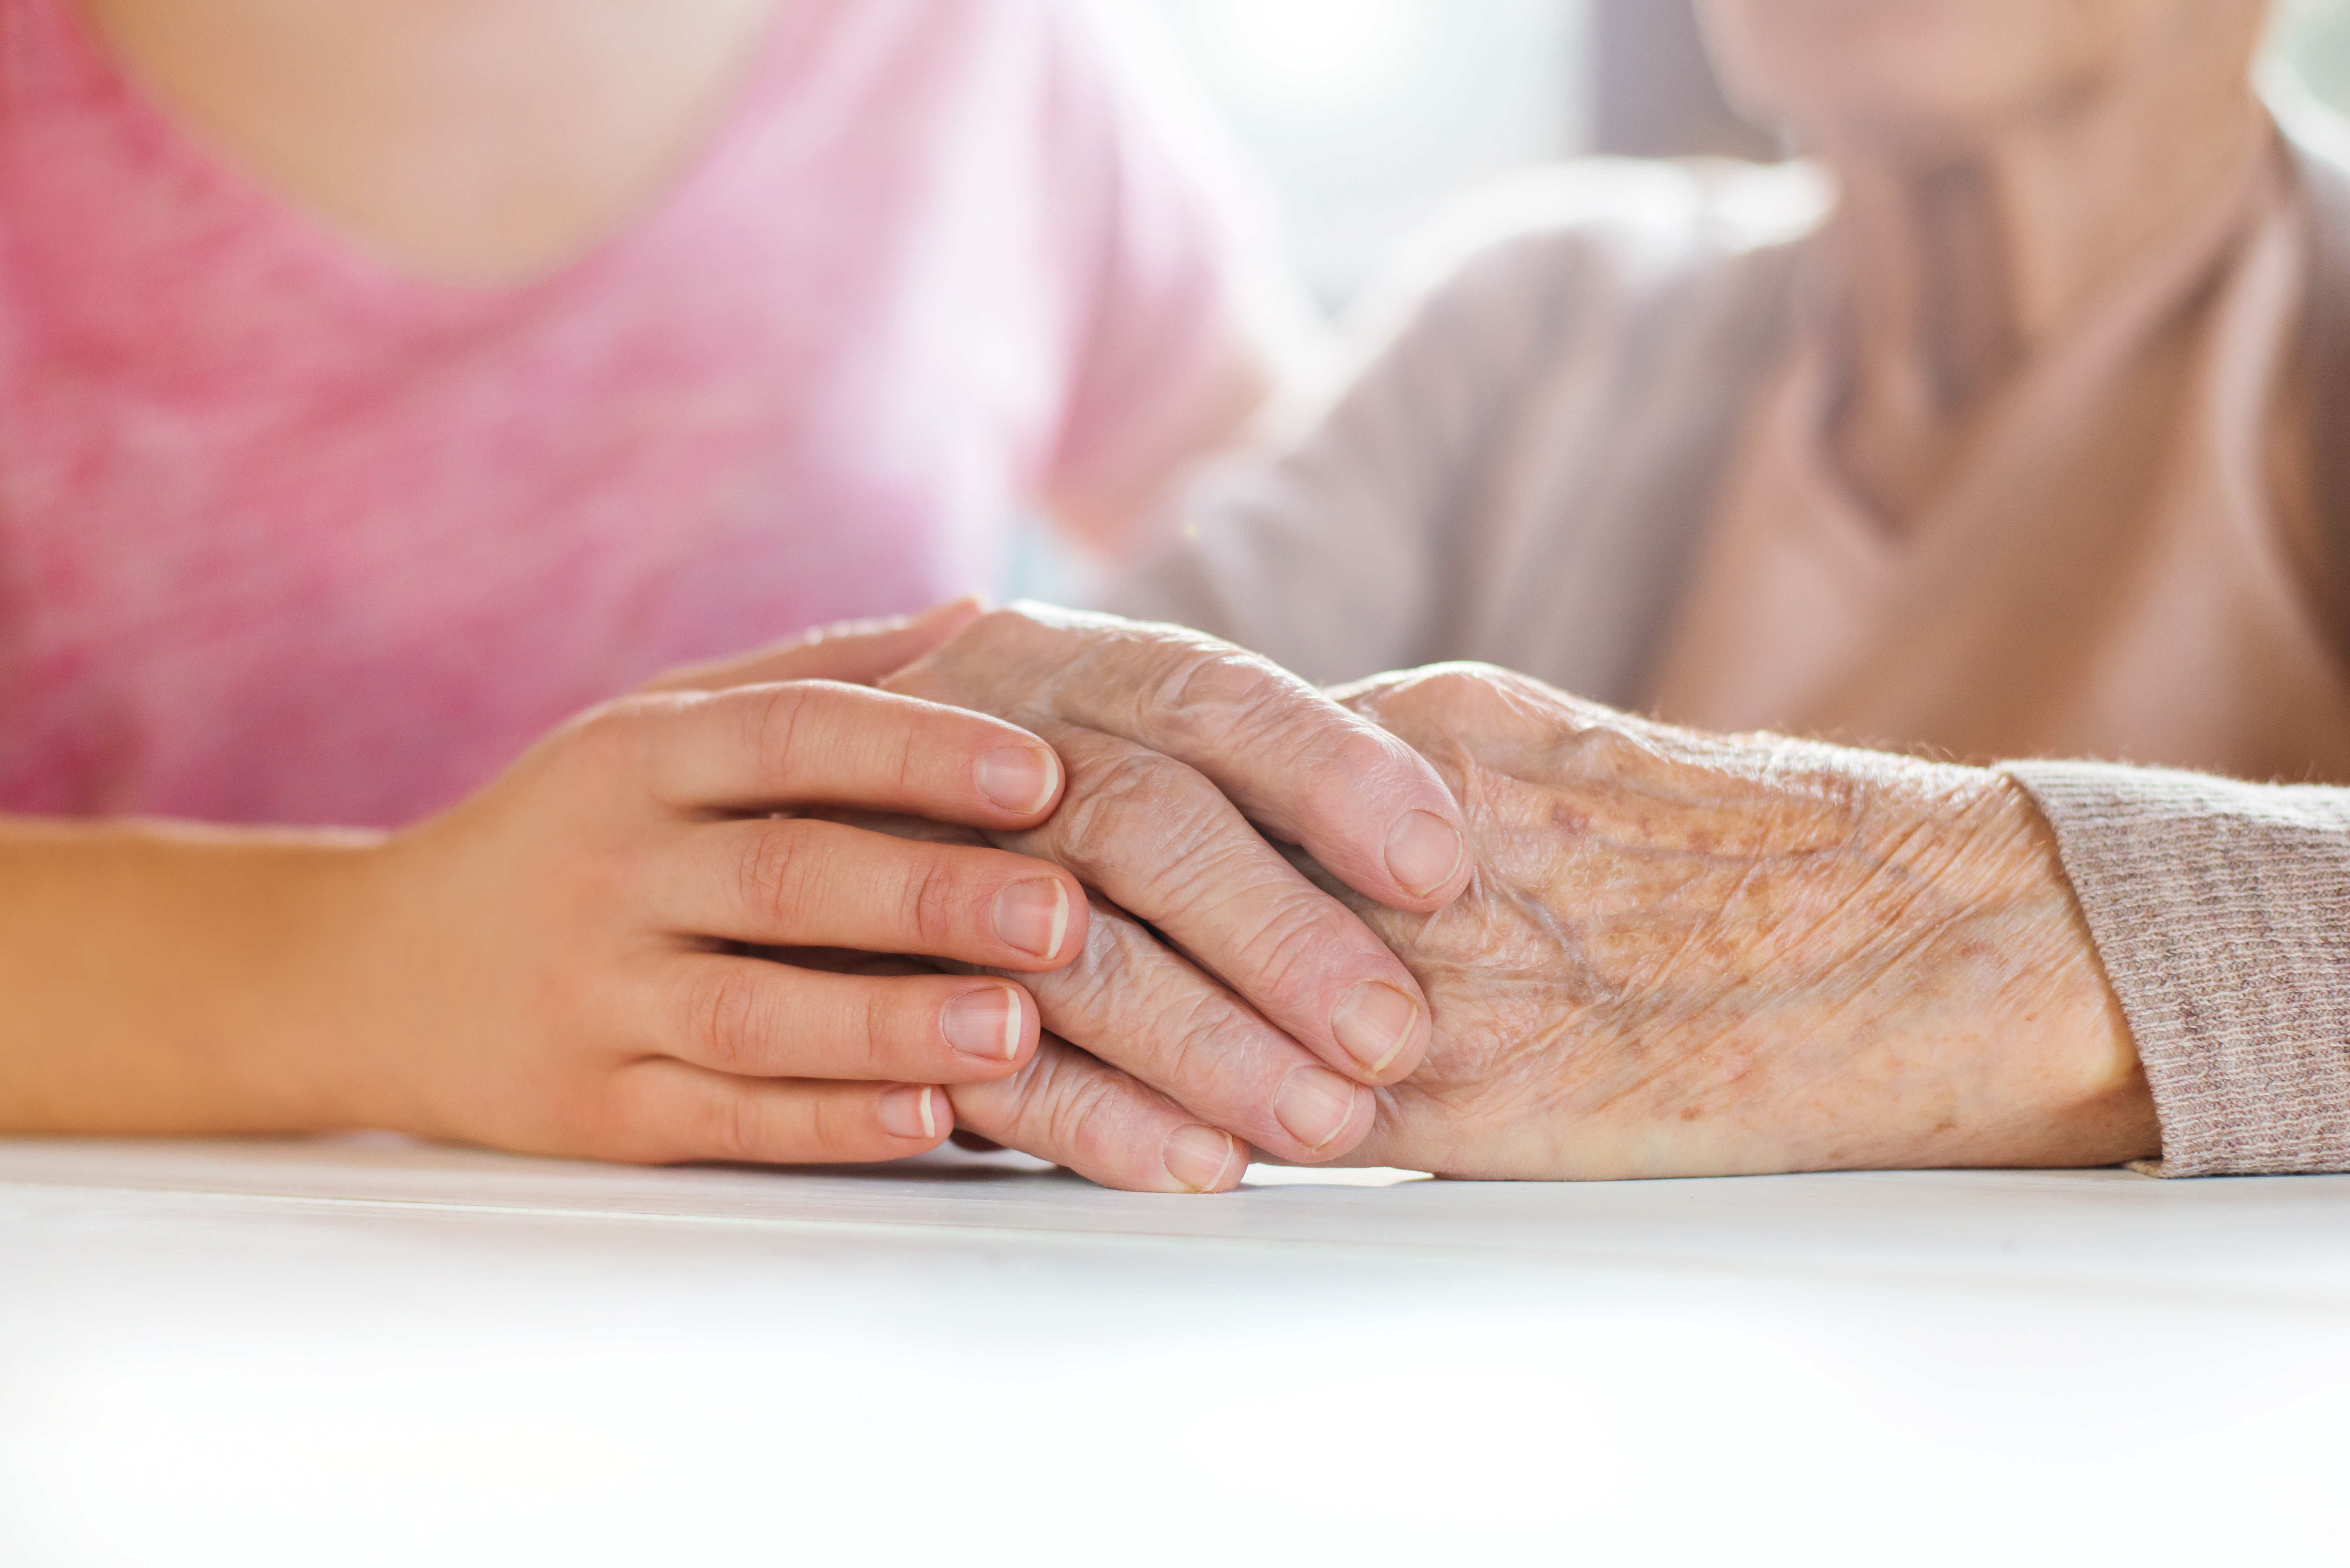 Do You Struggle with Being a Primary Caregiver?